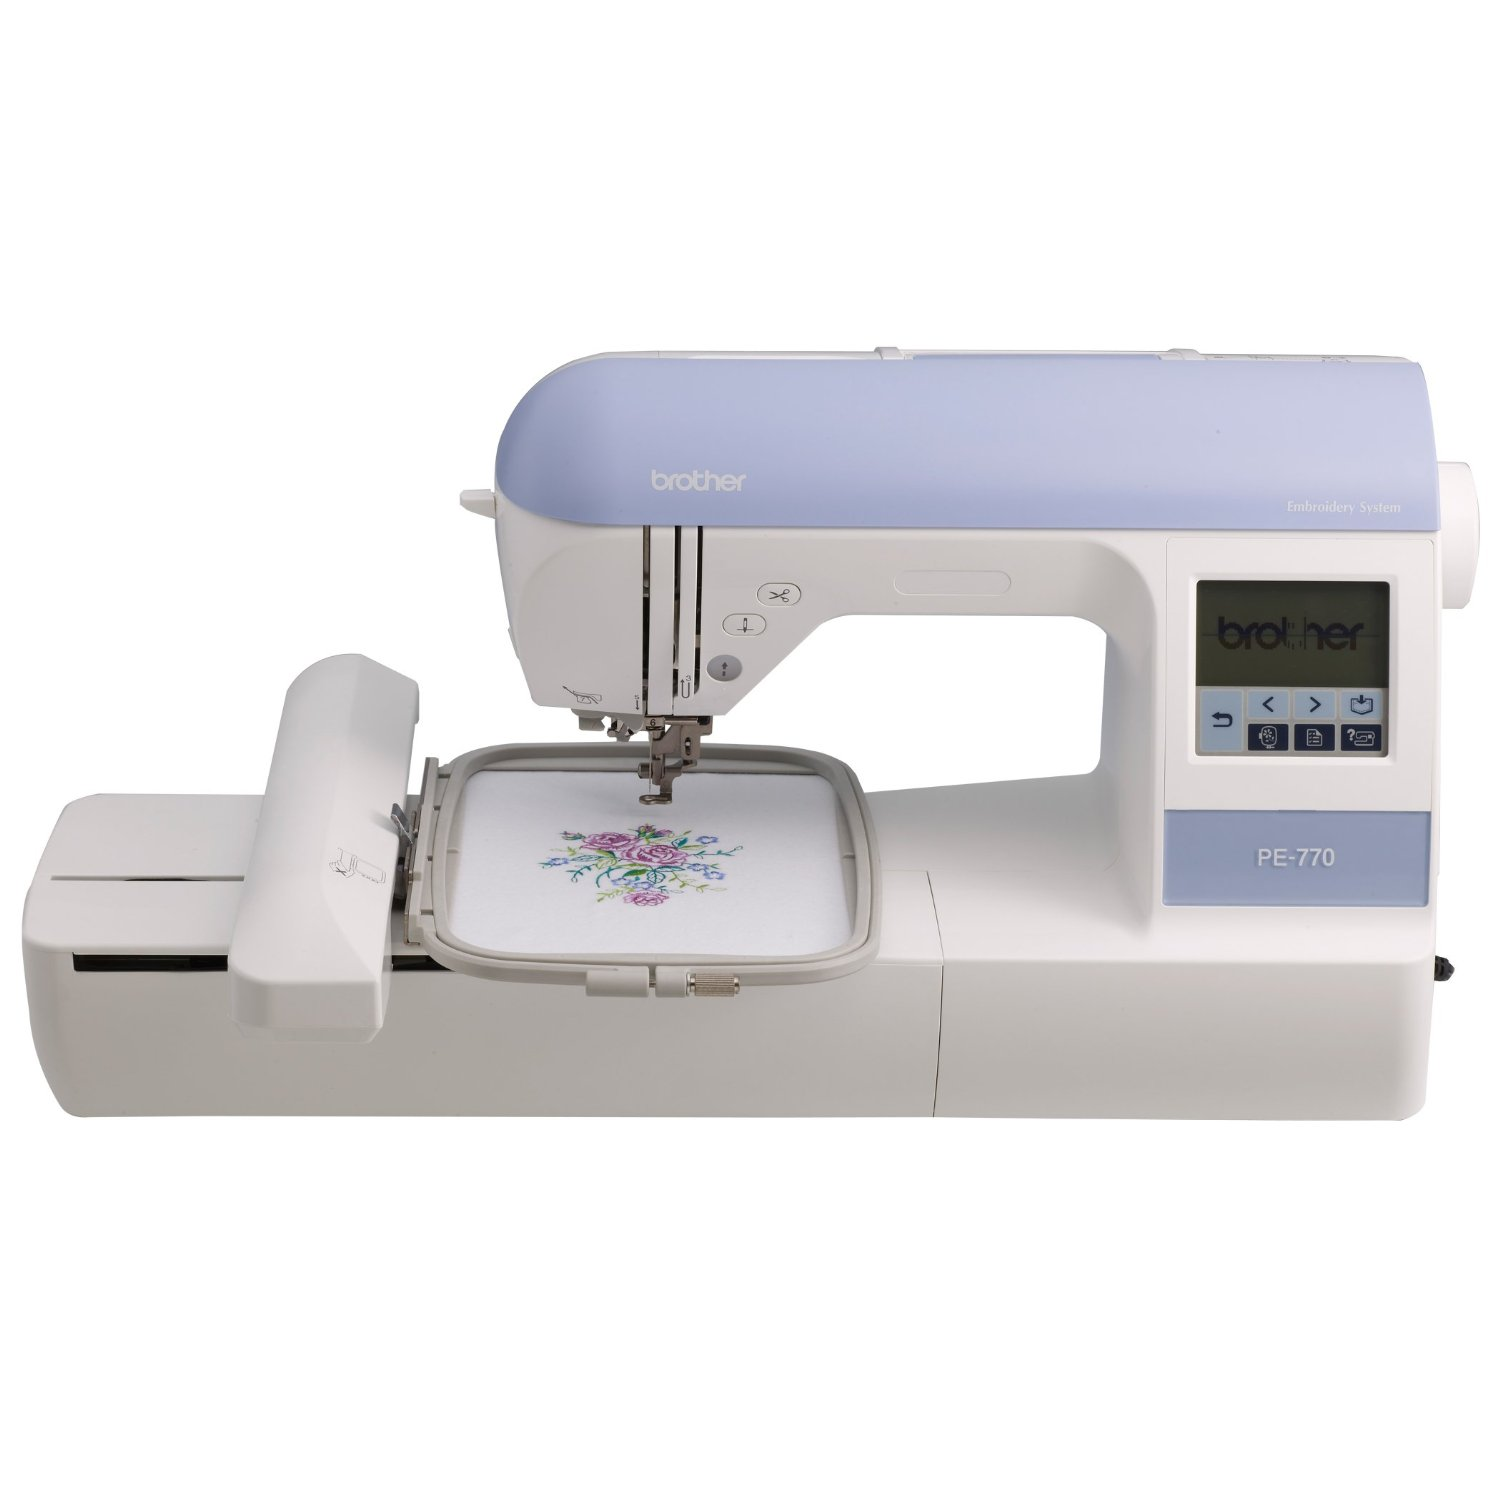 Best Brother Home Embroidery Machine